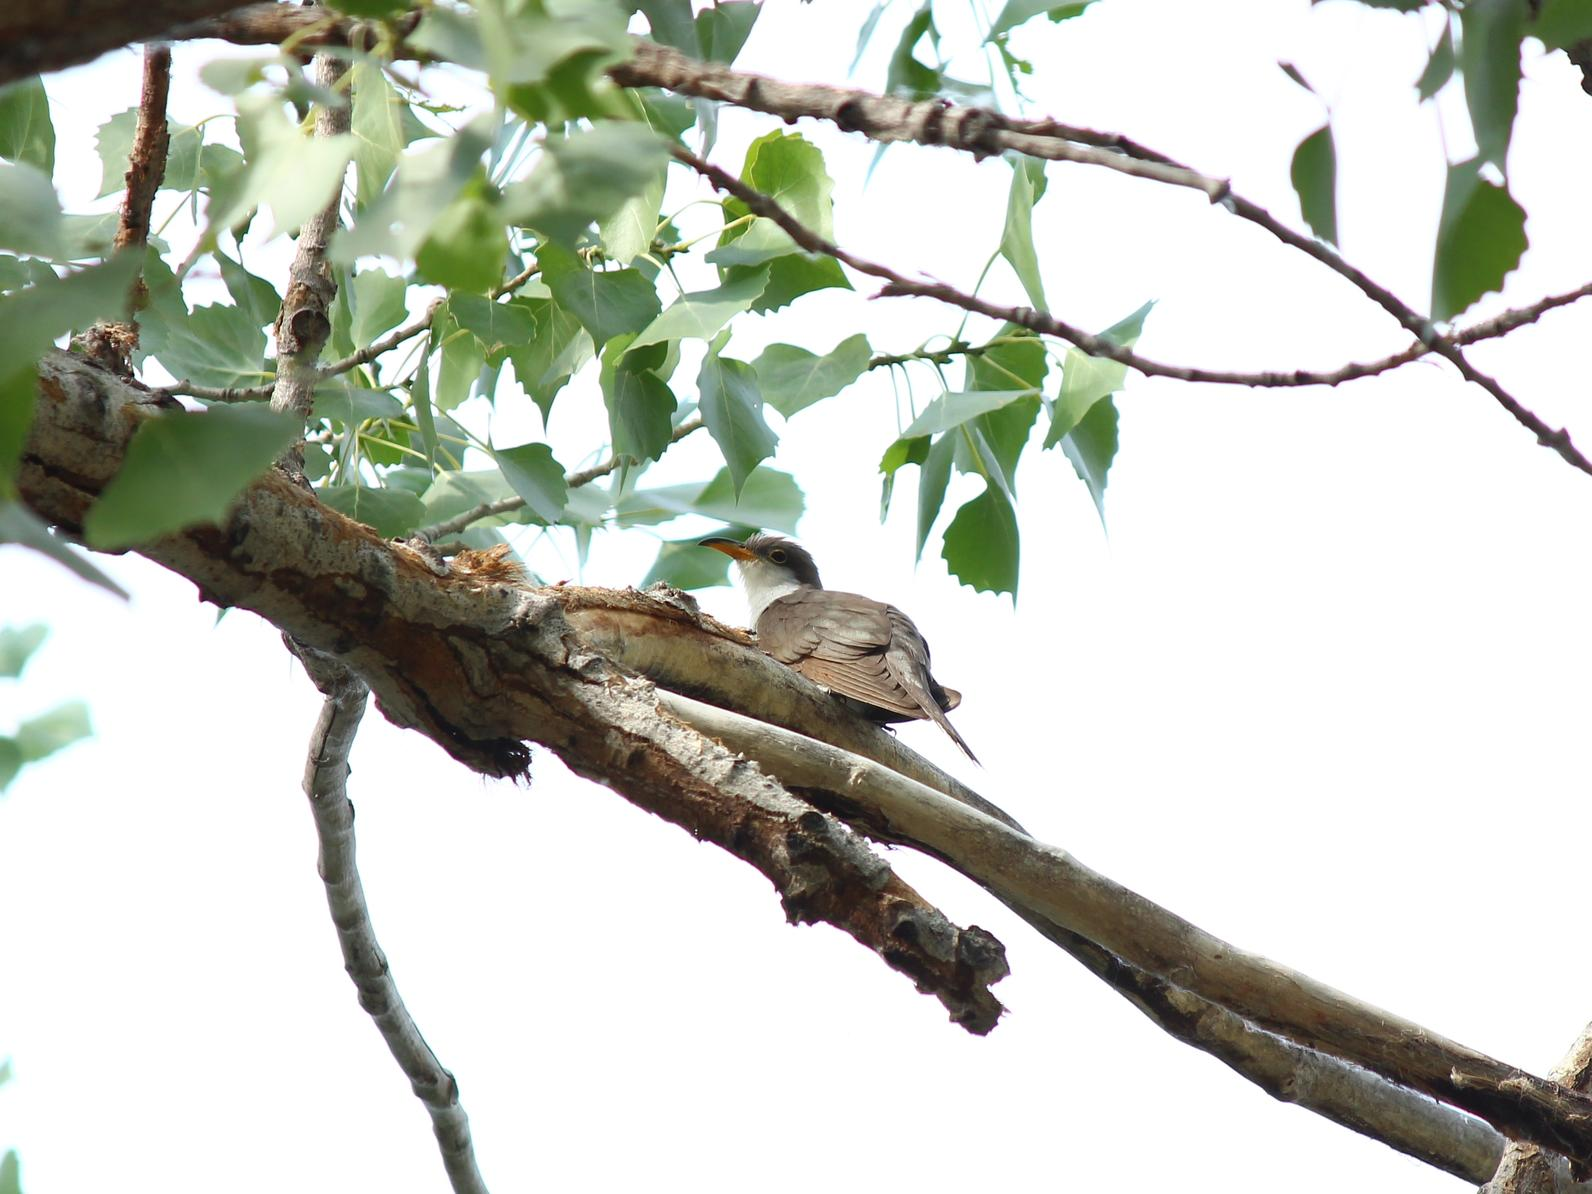 A Western Yellow-billed Cuckoo perches above the viewer on a leafy branch.